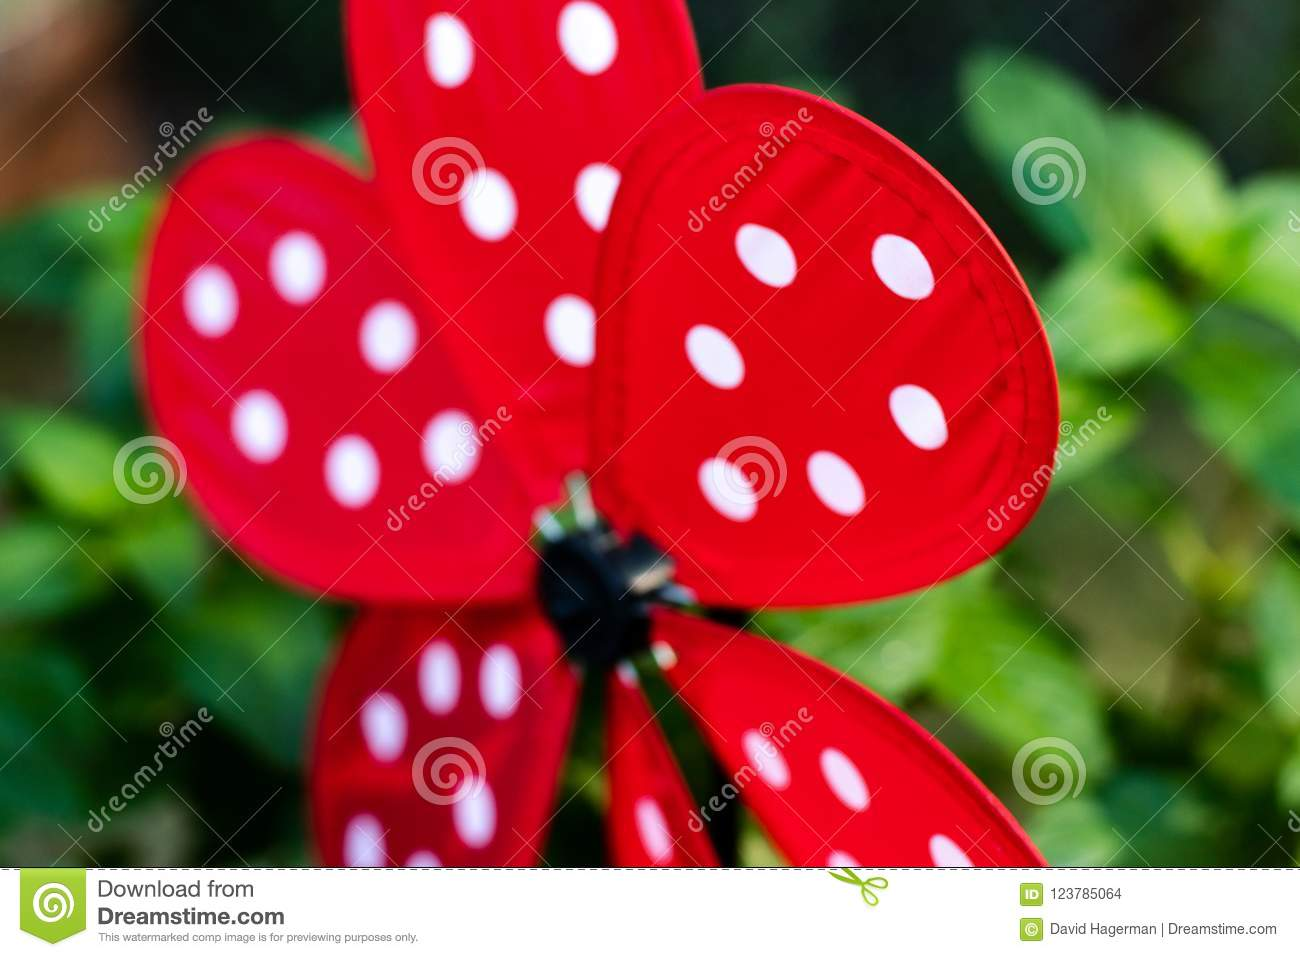 Download Garden Whirligig Abstract Red With White Ladybug Dots Stock Photo    Image Of Speed,